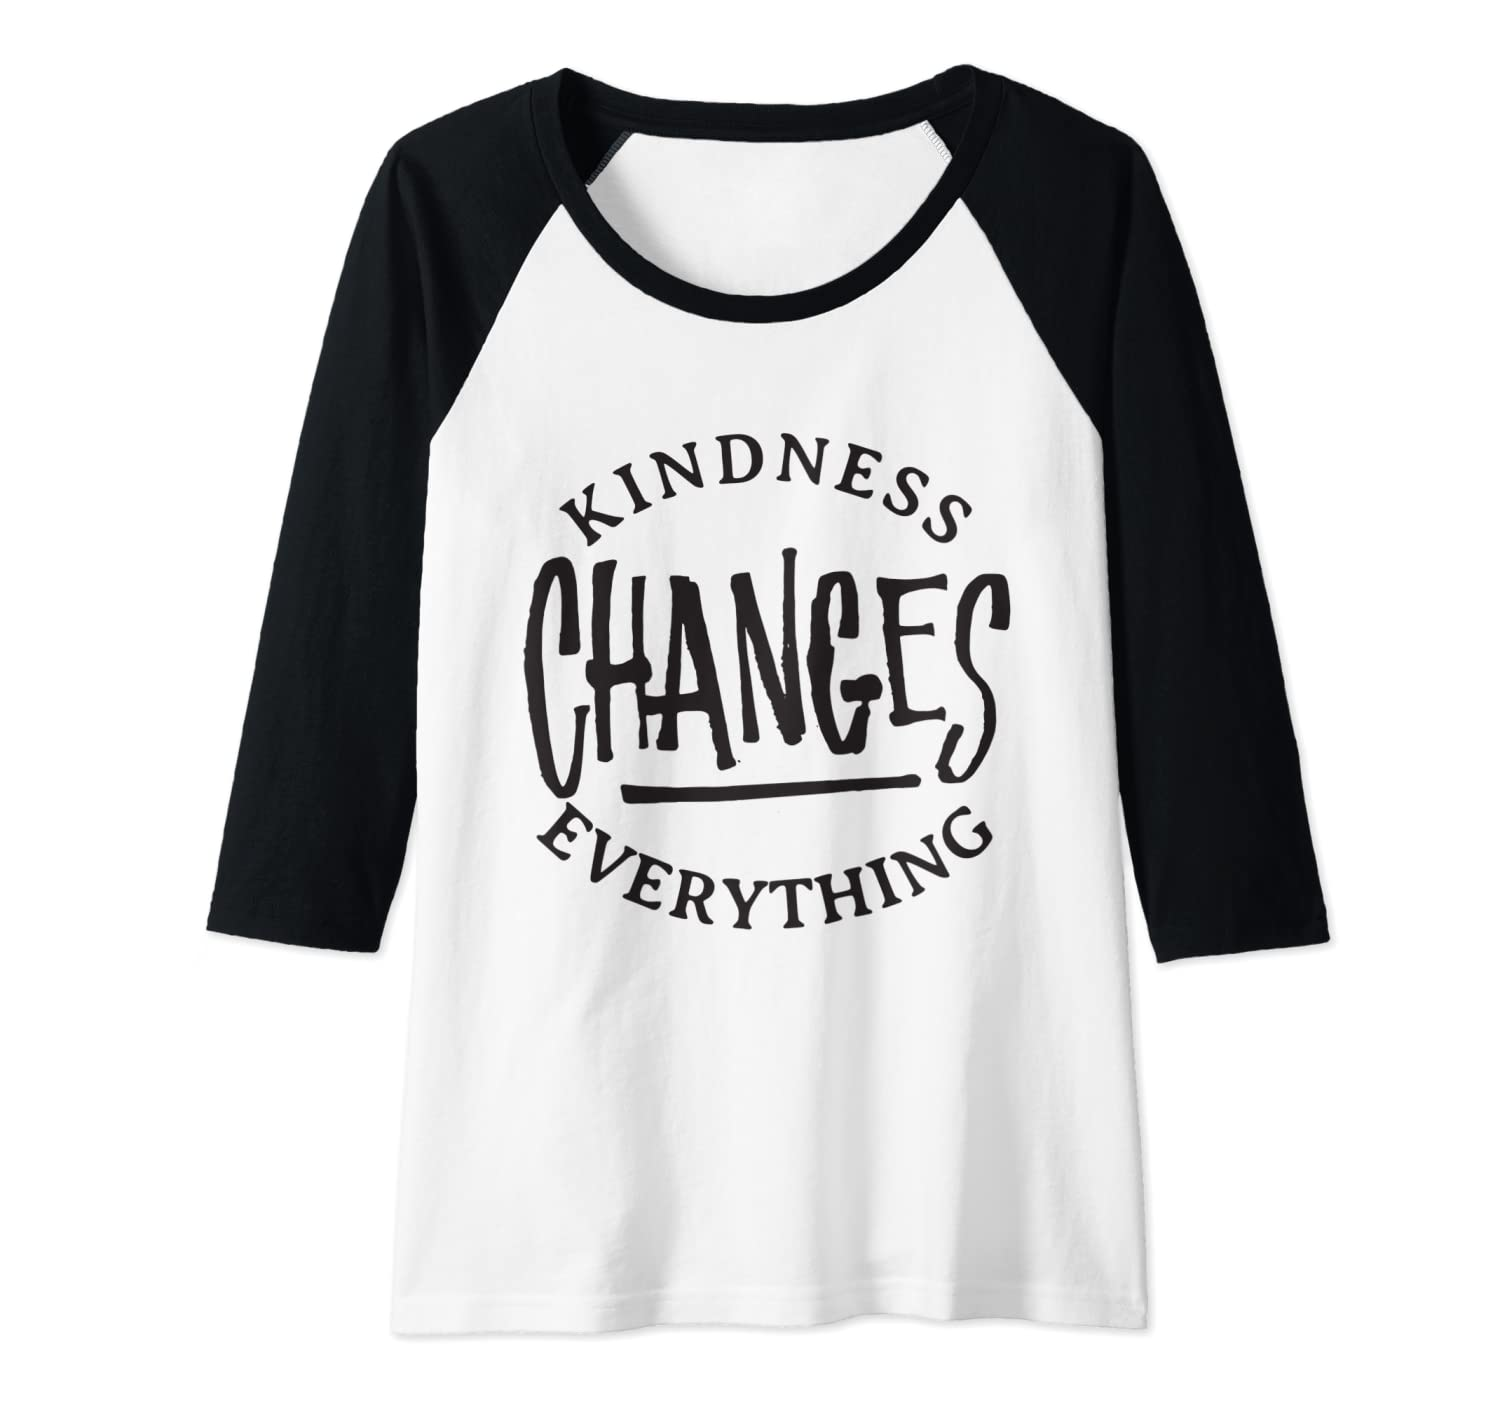 a68ad511d Amazon.com: Kindness Changes Everything - Kind Inspirational Quote Raglan  Baseball Tee: Clothing